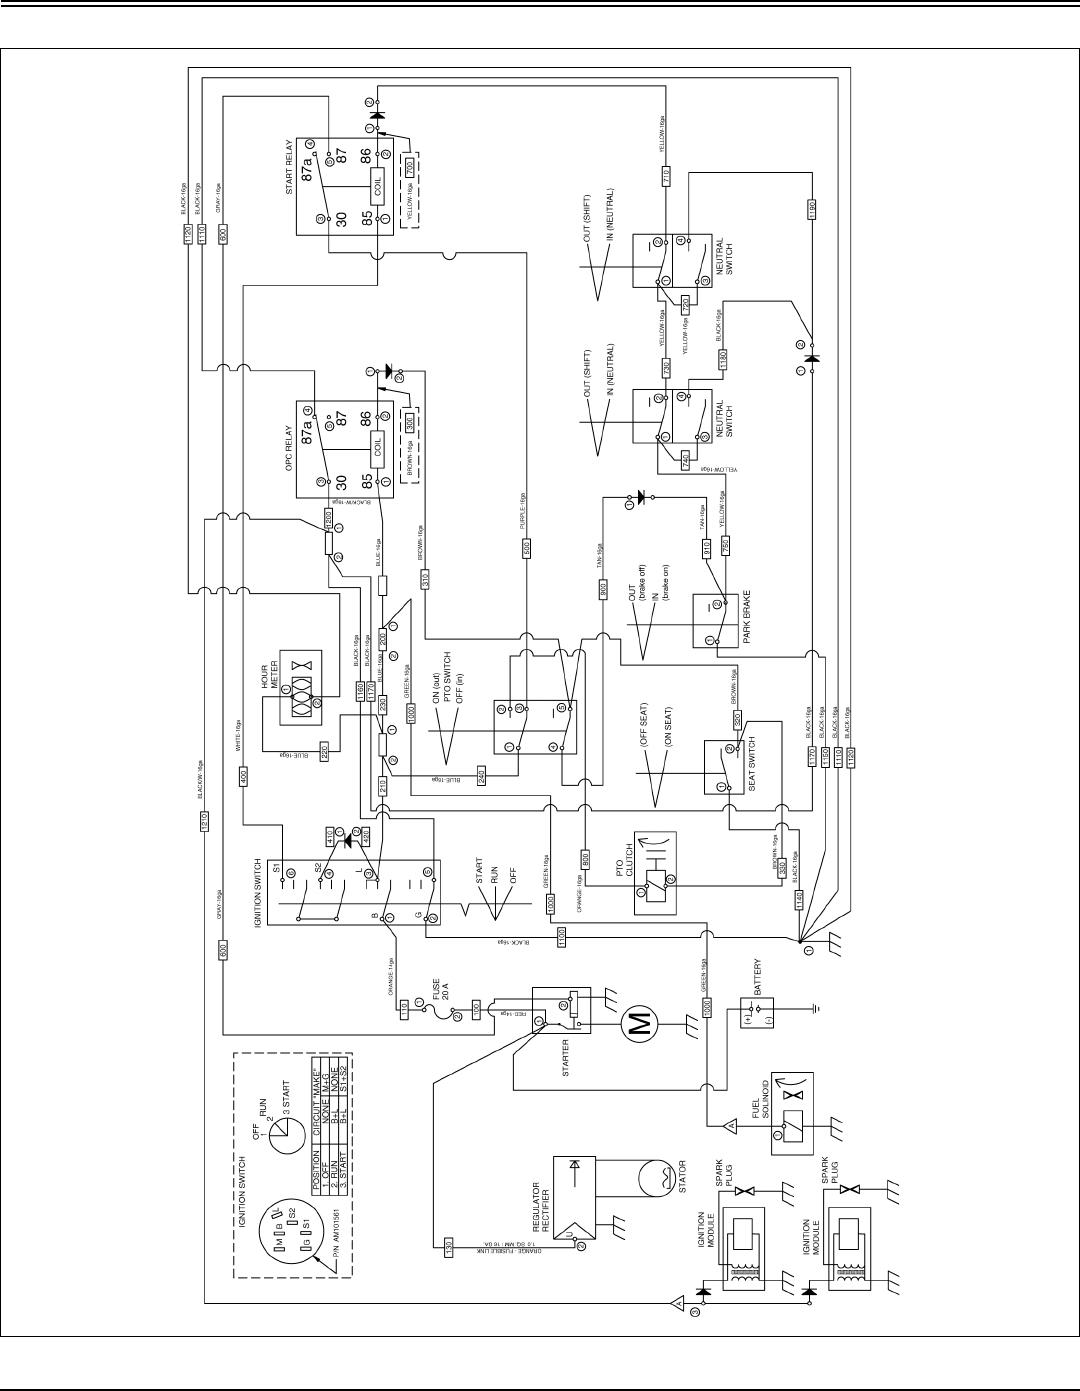 wiring diagram for great dane trailer free download wiring diagram rh xwiaw us Trailer Wiring Diagrams by Number Interstate Cargo Trailer Wiring Diagram